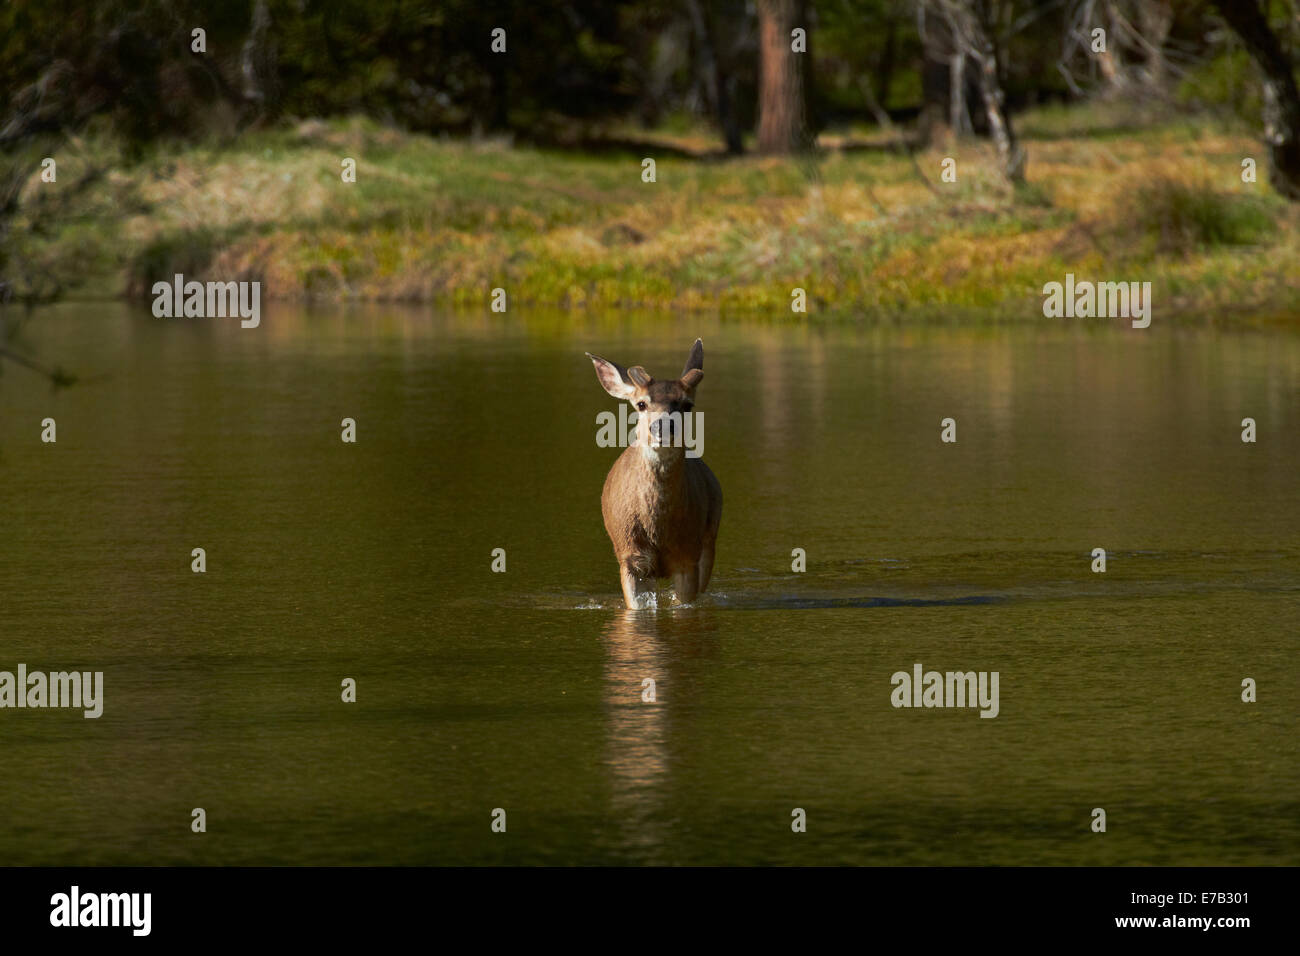 Le cerf mulet (Odocoileus hemionus) par Mirror Lake, Tenaya Canyon, Yosemite National Park, California, USA Photo Stock